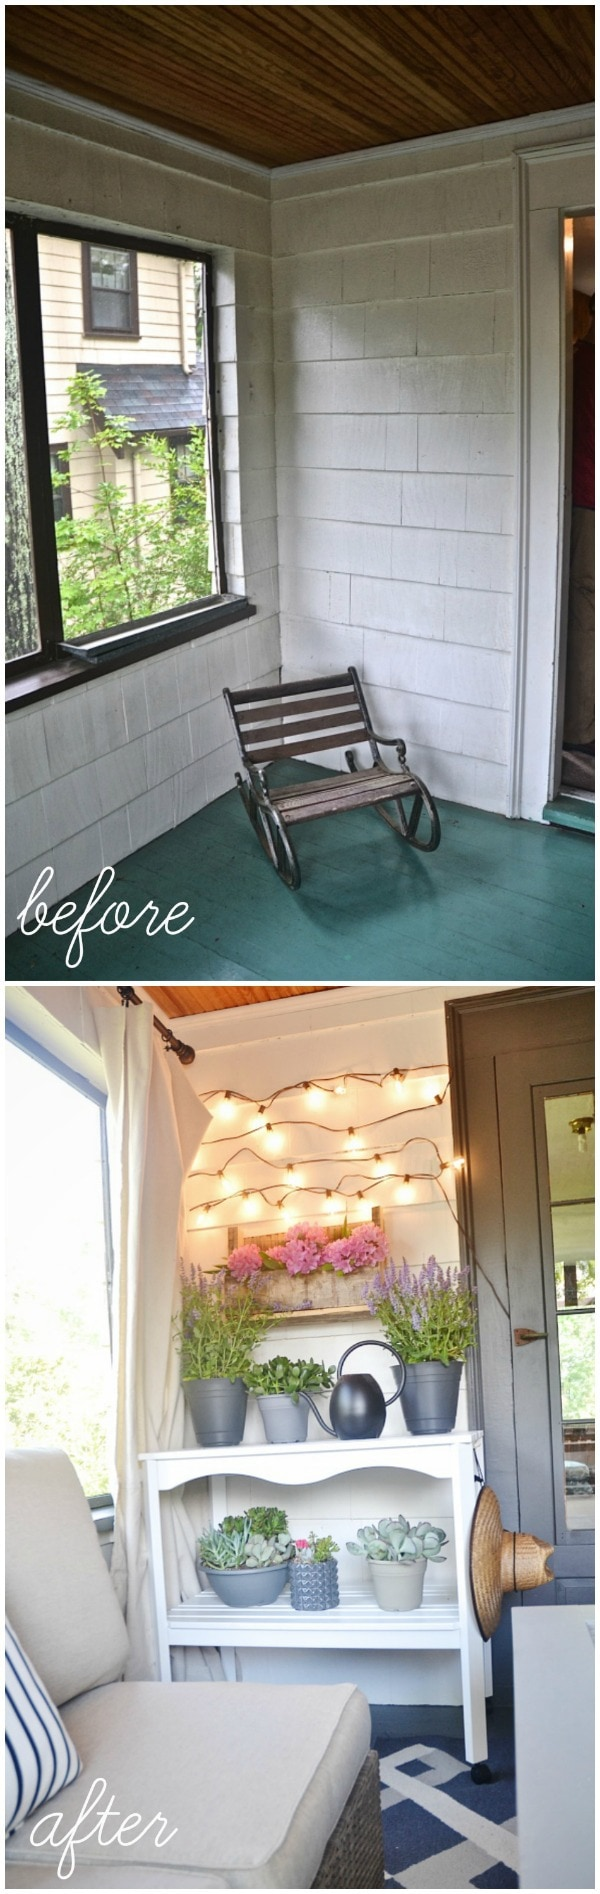 Dramatic sunroom makeover -  A must see!